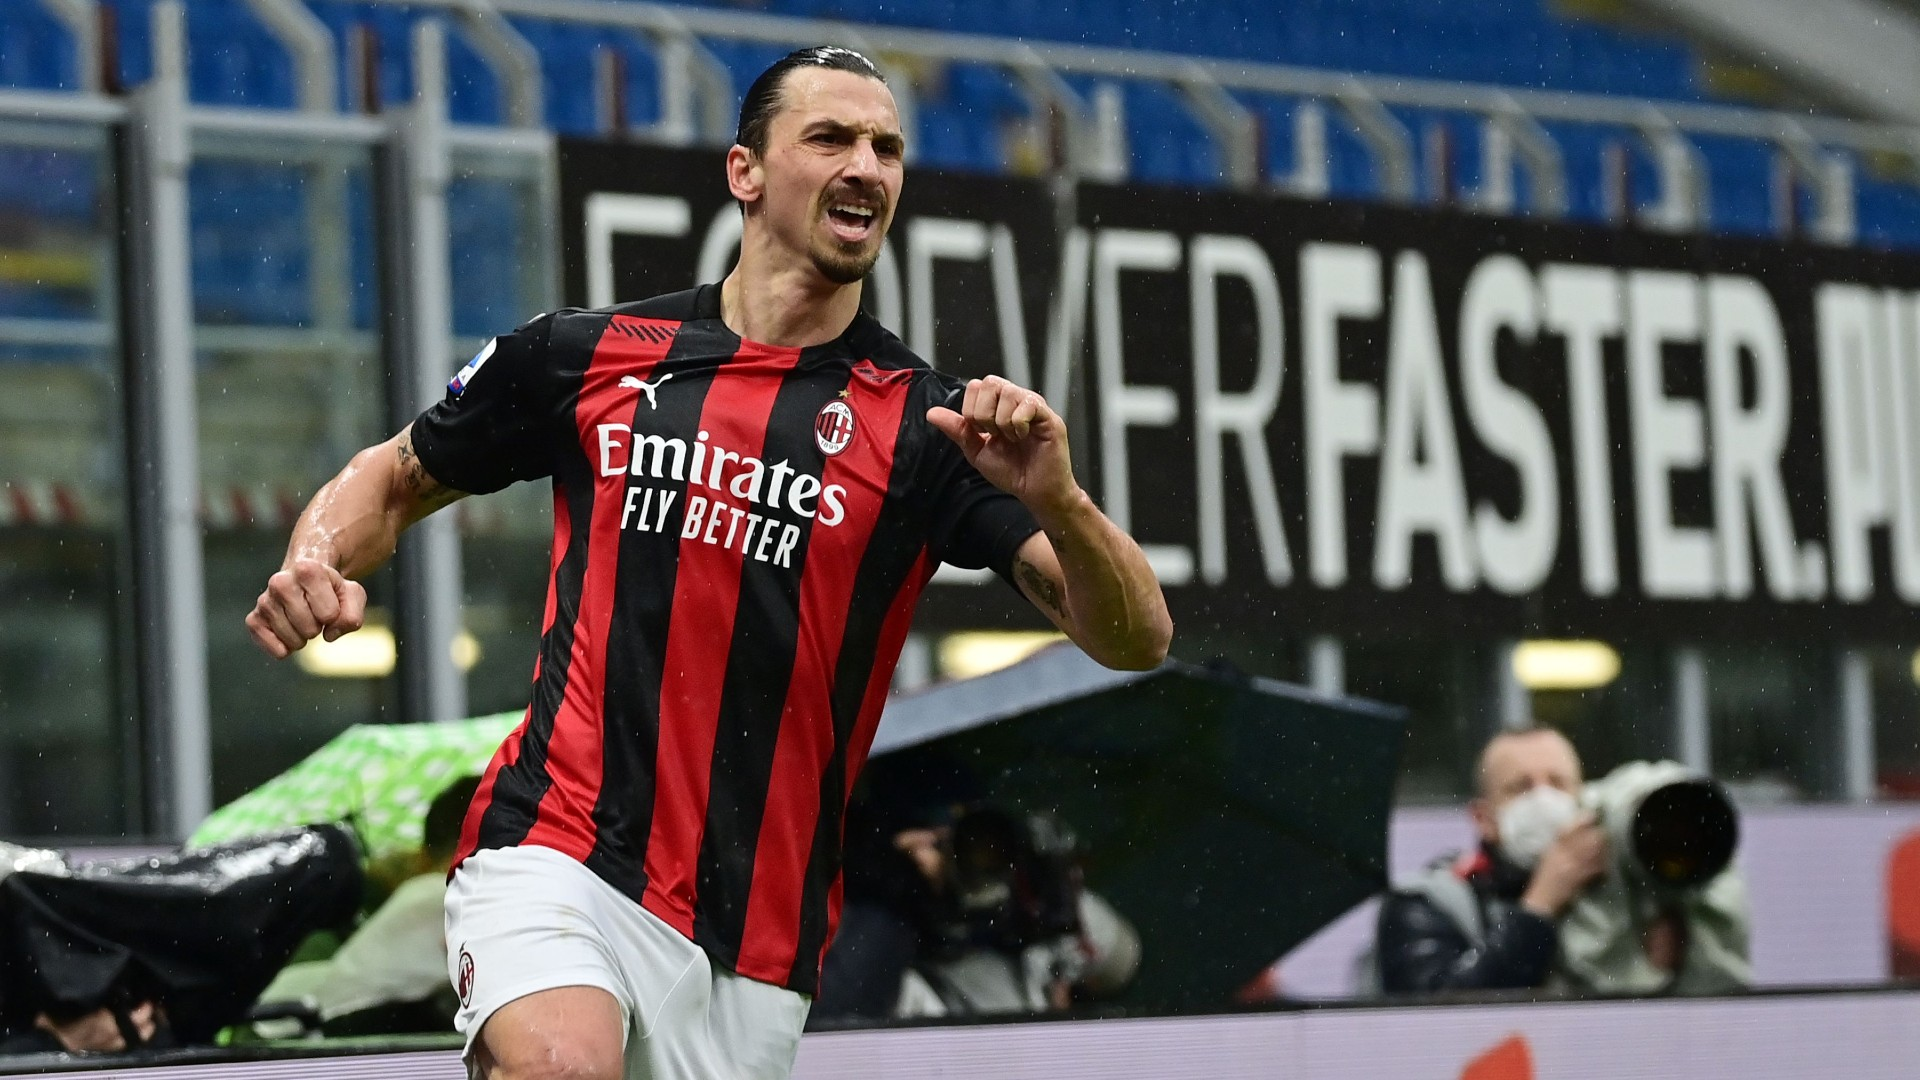 Ibrahimovic scores 500th club goal with AC Milan strike in comfortable Serie A win over Crotone